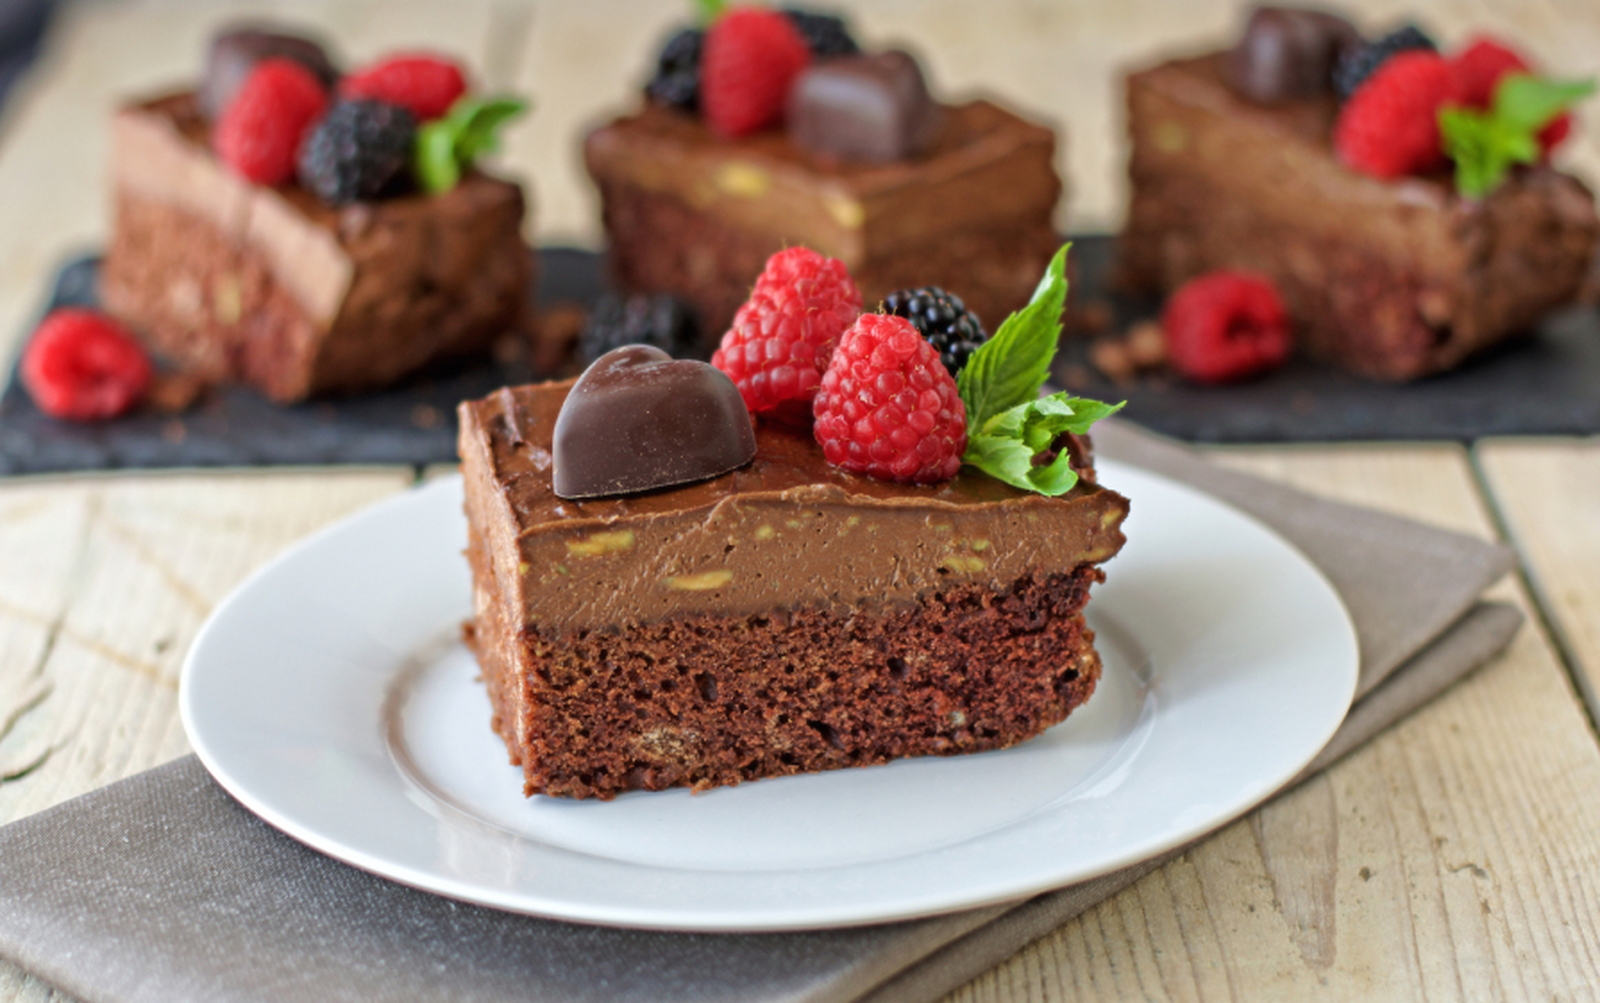 Chocolate Mousse Cake [Vegan, Gluten-Free]